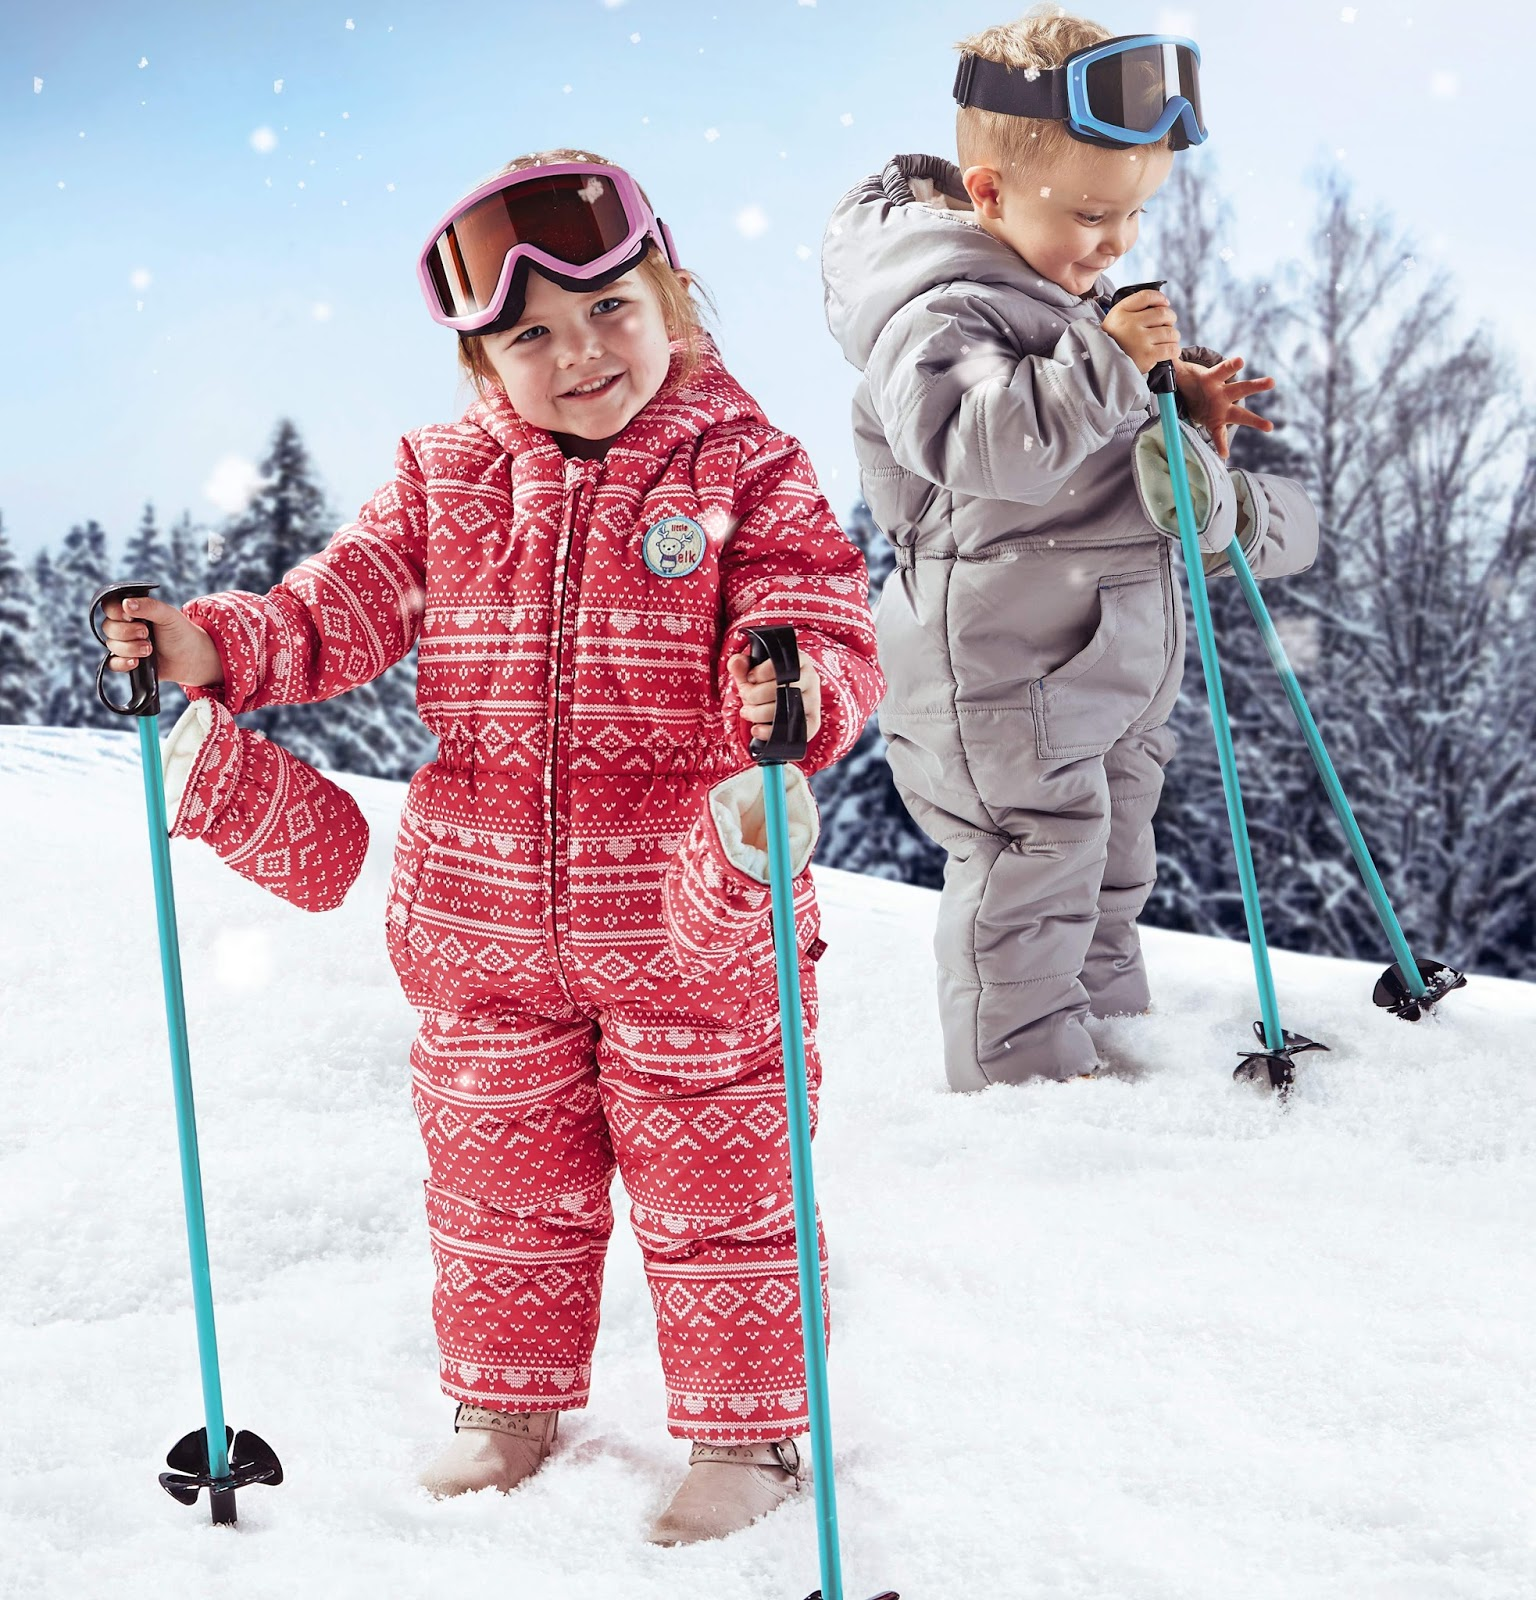 Wafflemama.: Winter Ski & Snowboard Clothing At Aldi